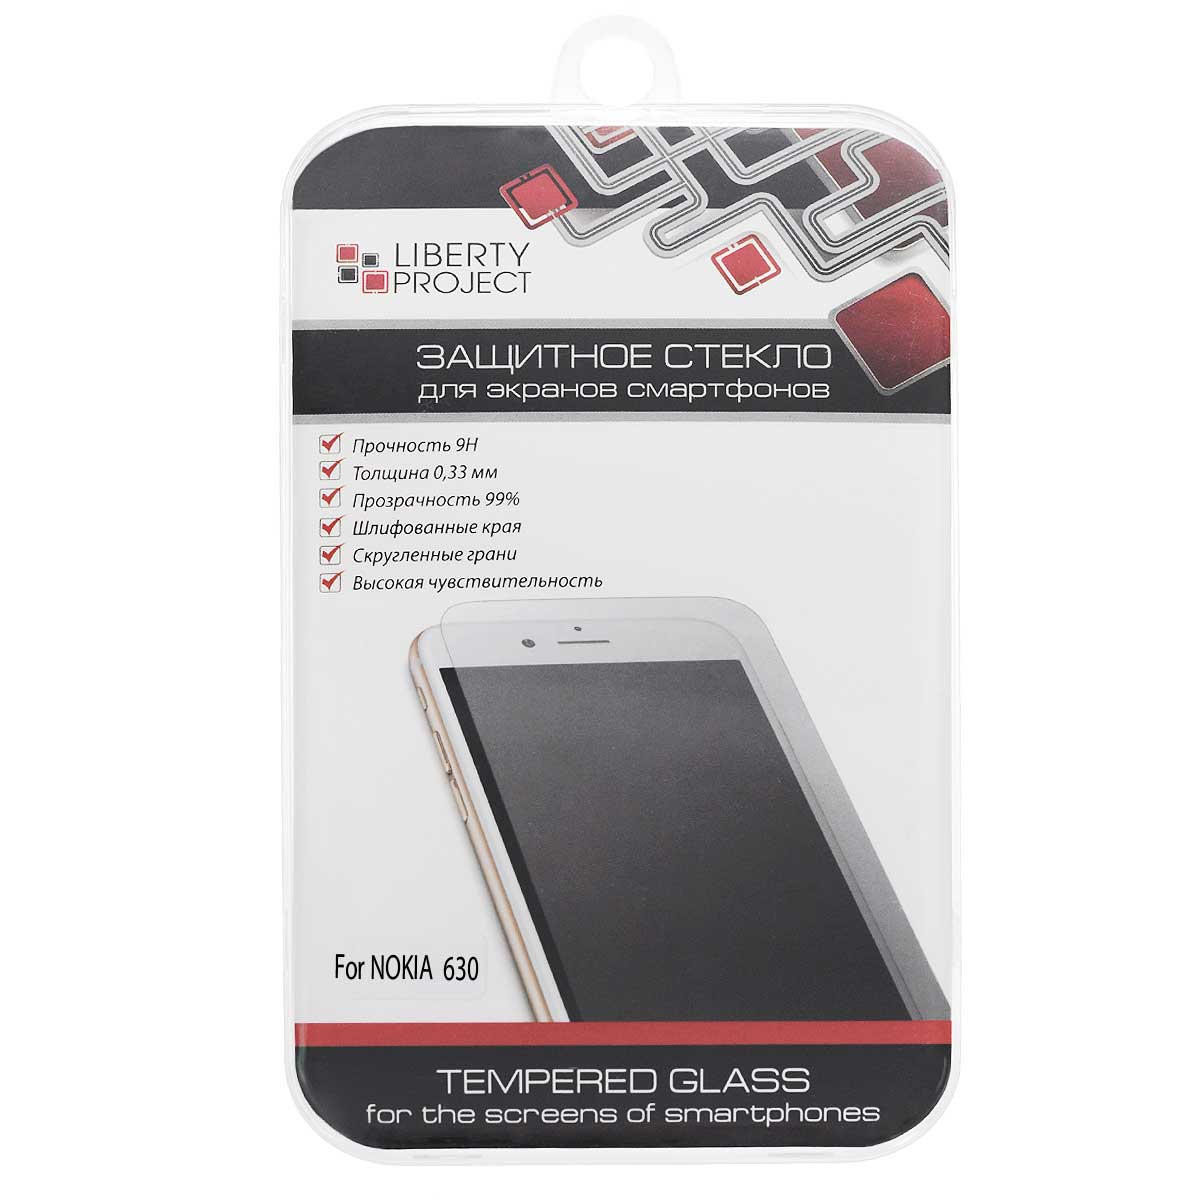 Liberty Project Tempered Glass защитное стекло для Nokia 630, Clear (,33 мм)